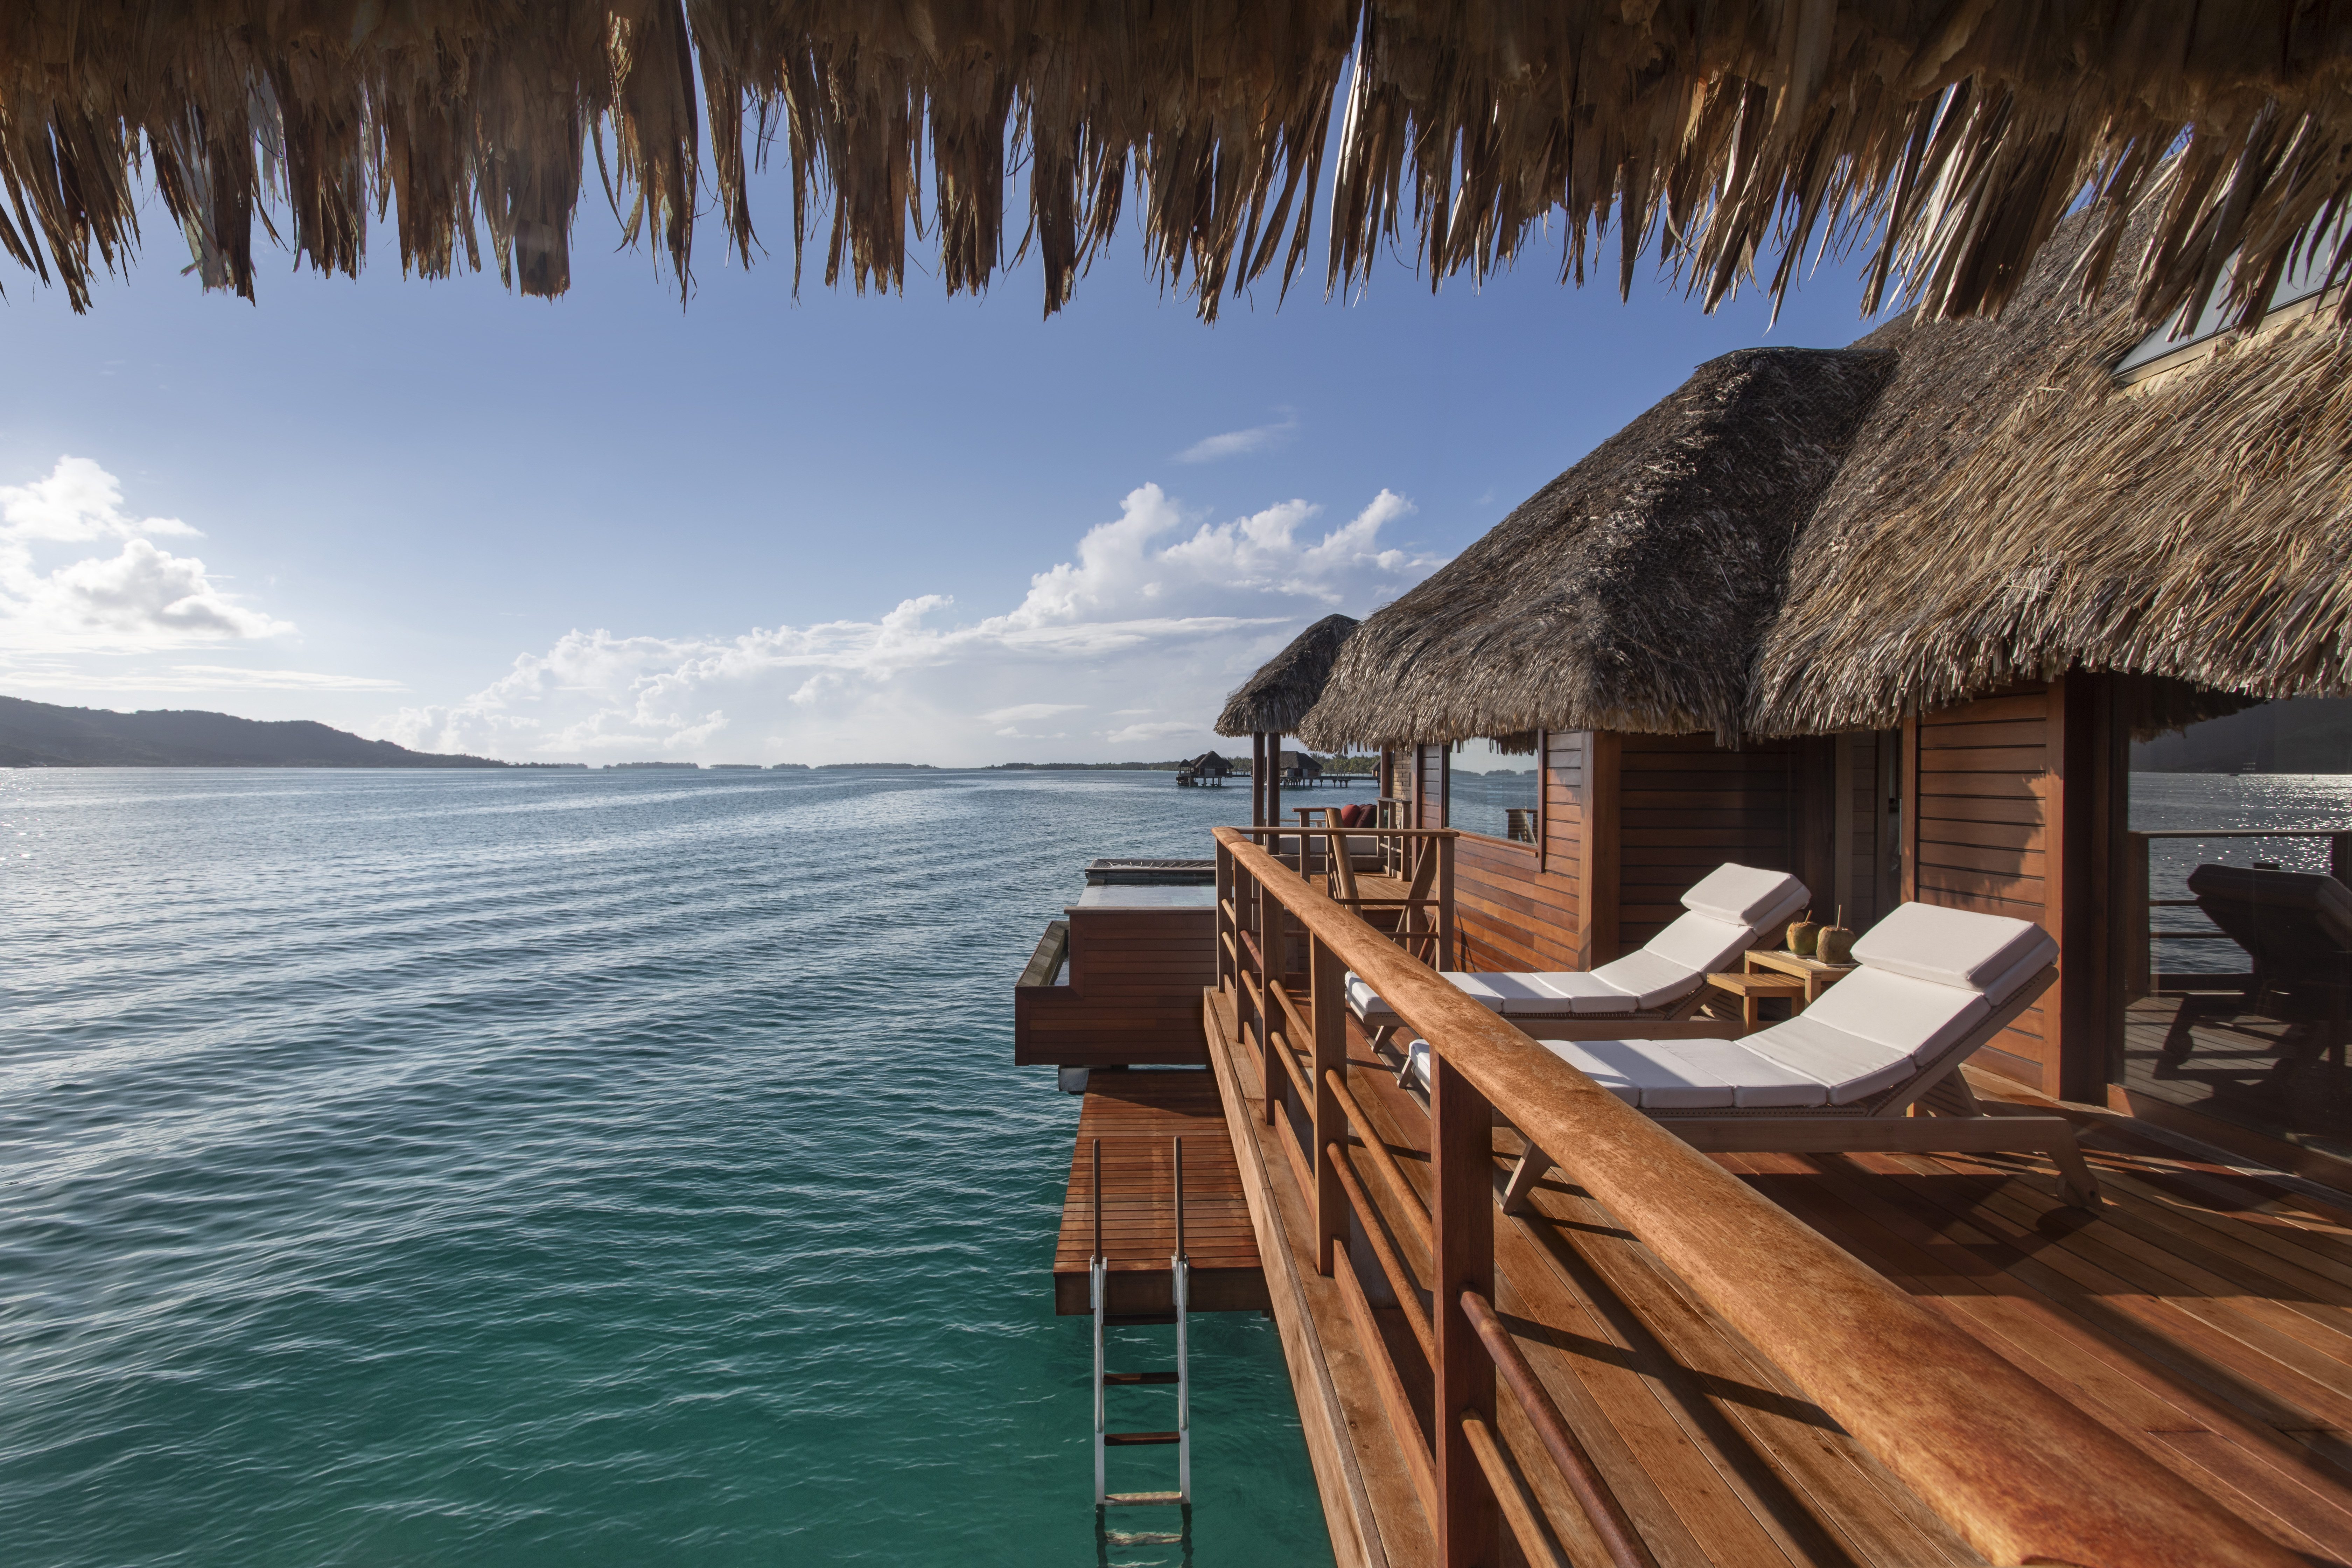 Four Seasons borabora